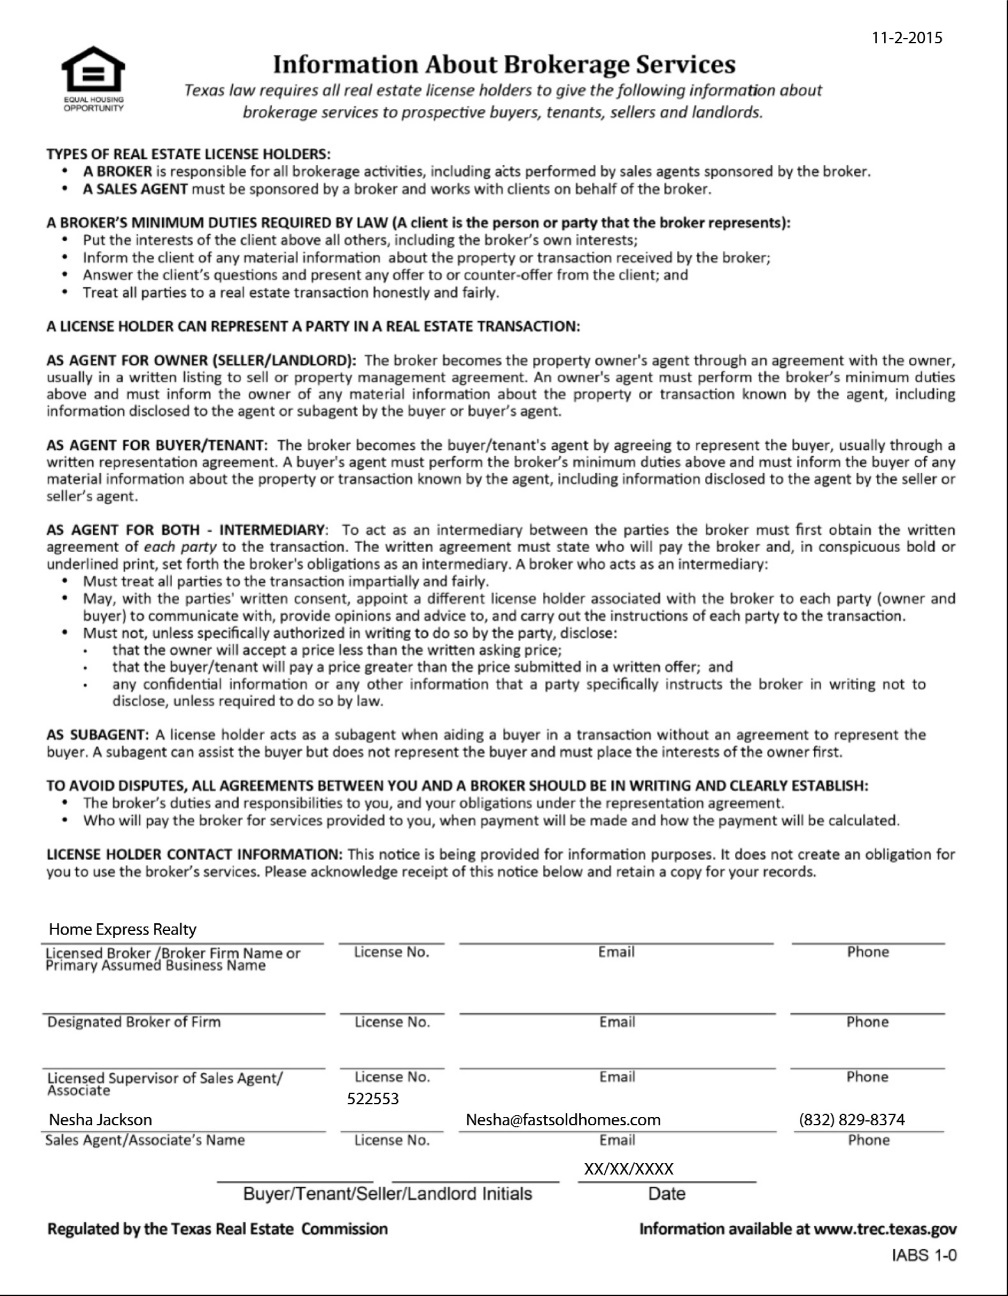 Texas Real Estate Commission (TREC) Information About Brokerage Services Form-62